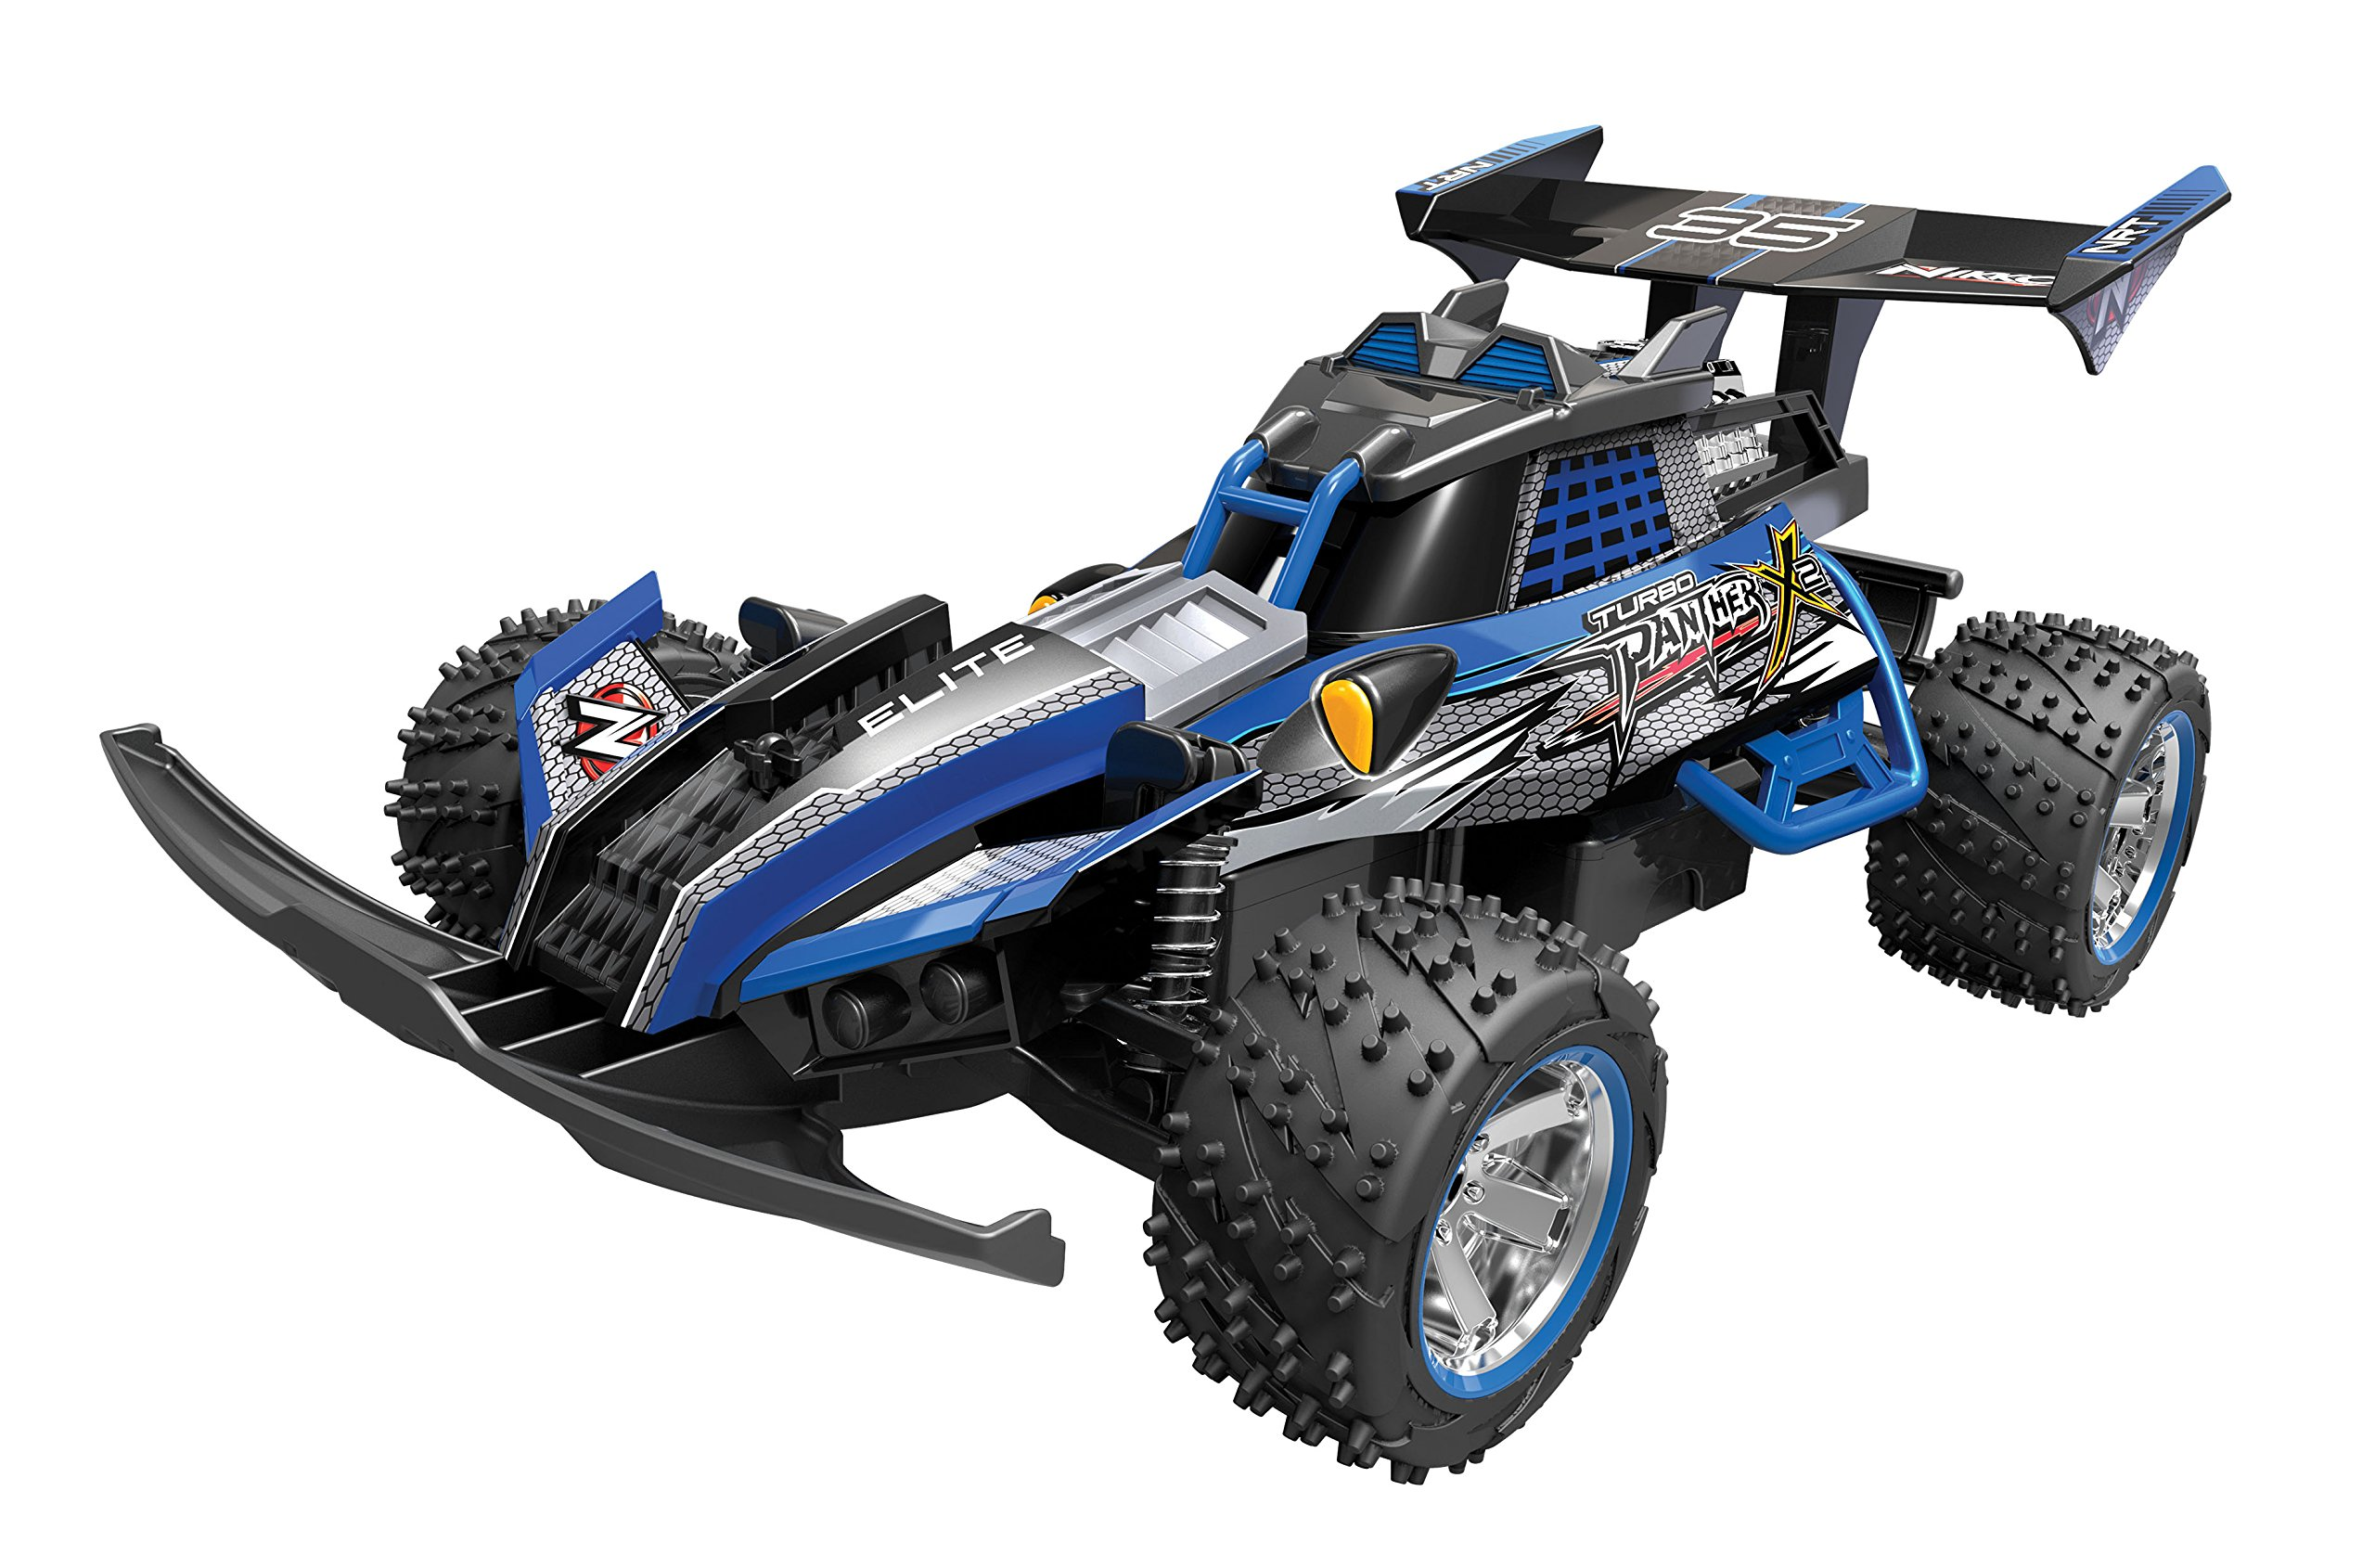 Toy State Nikko Turbo Panther X2 Blue 1:10 Scale Radio Control (FFP) Vehicle by